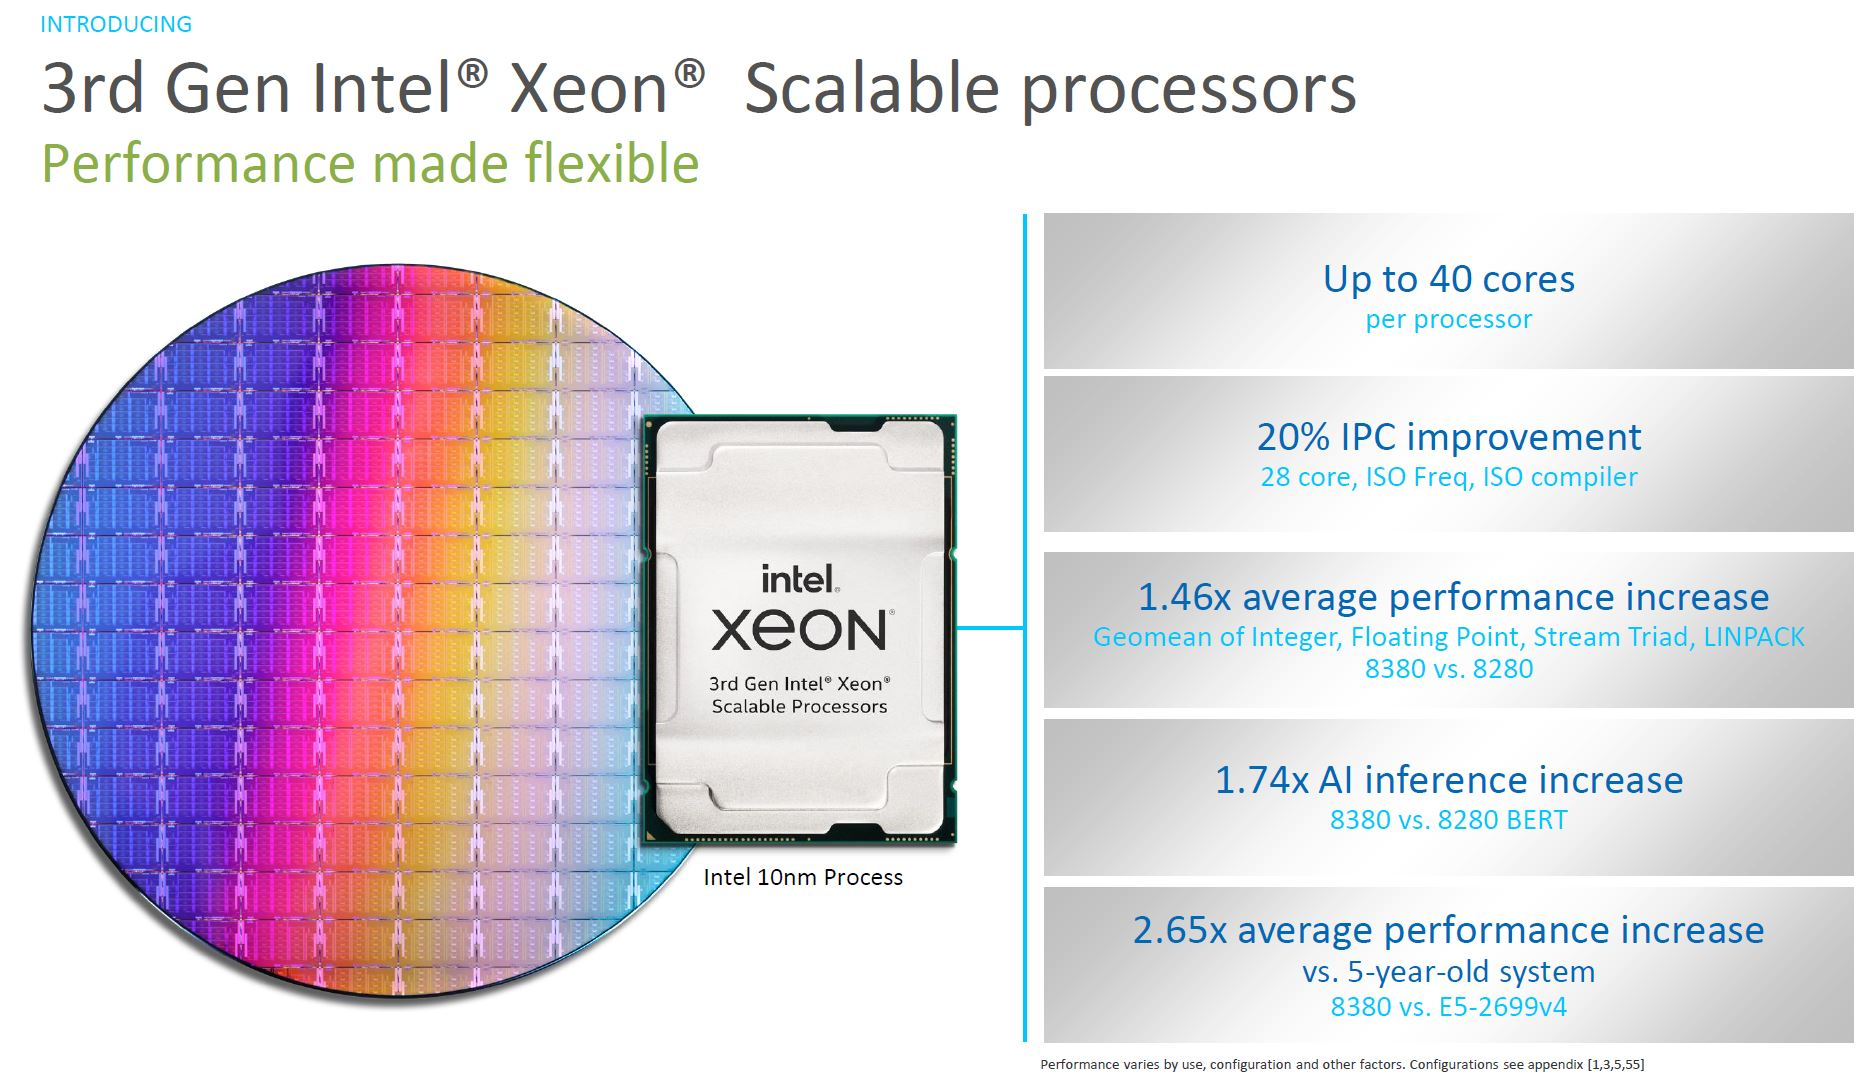 3rd Generation Intel Xeon Scalable Benefit Overview